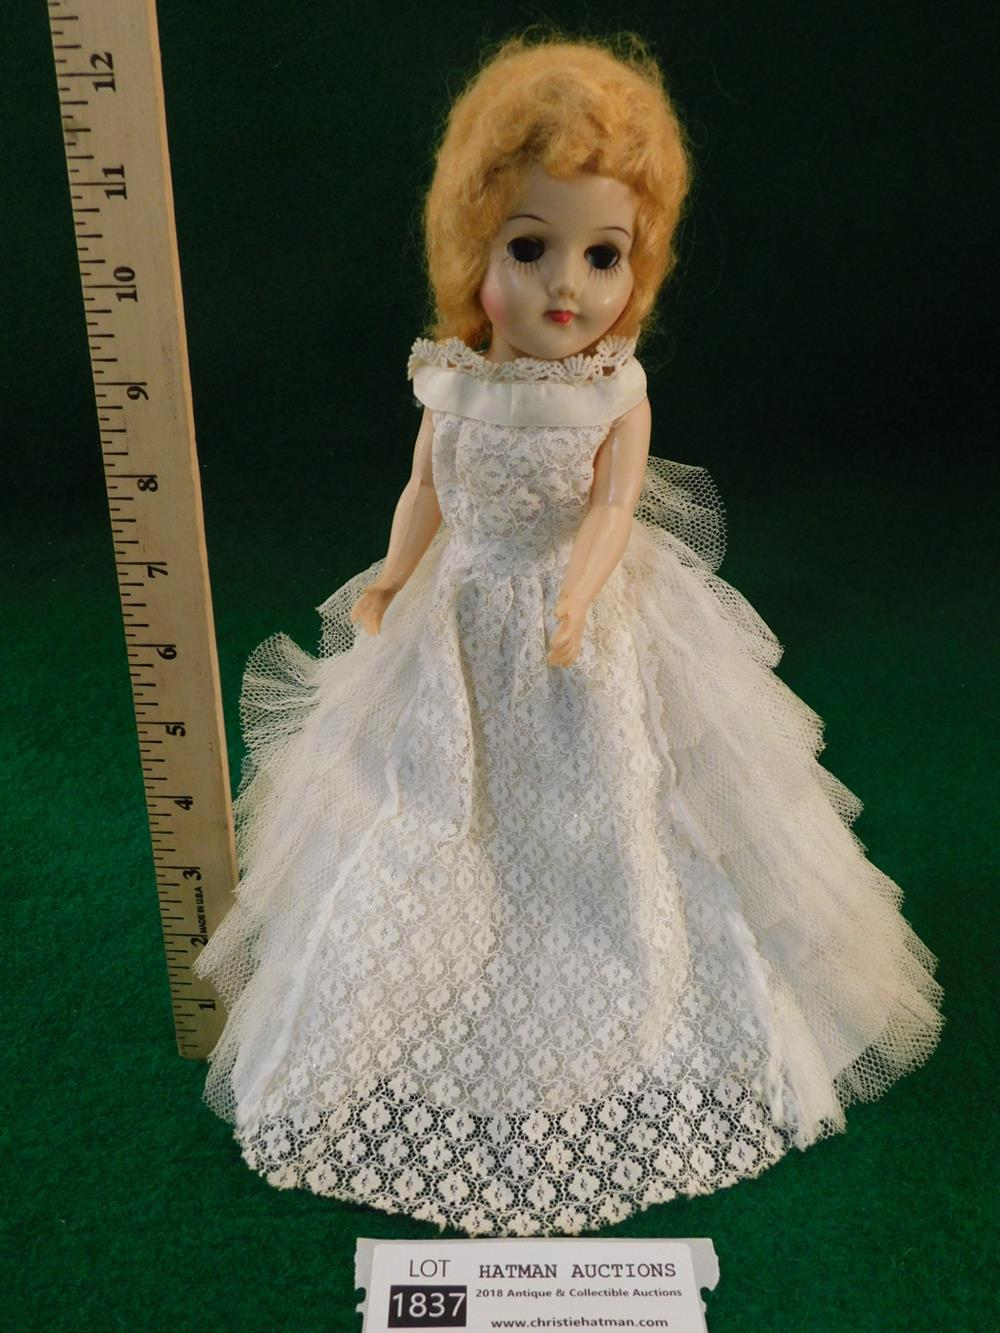 VINTAGE DOLLS AND DOLL CLOTHES